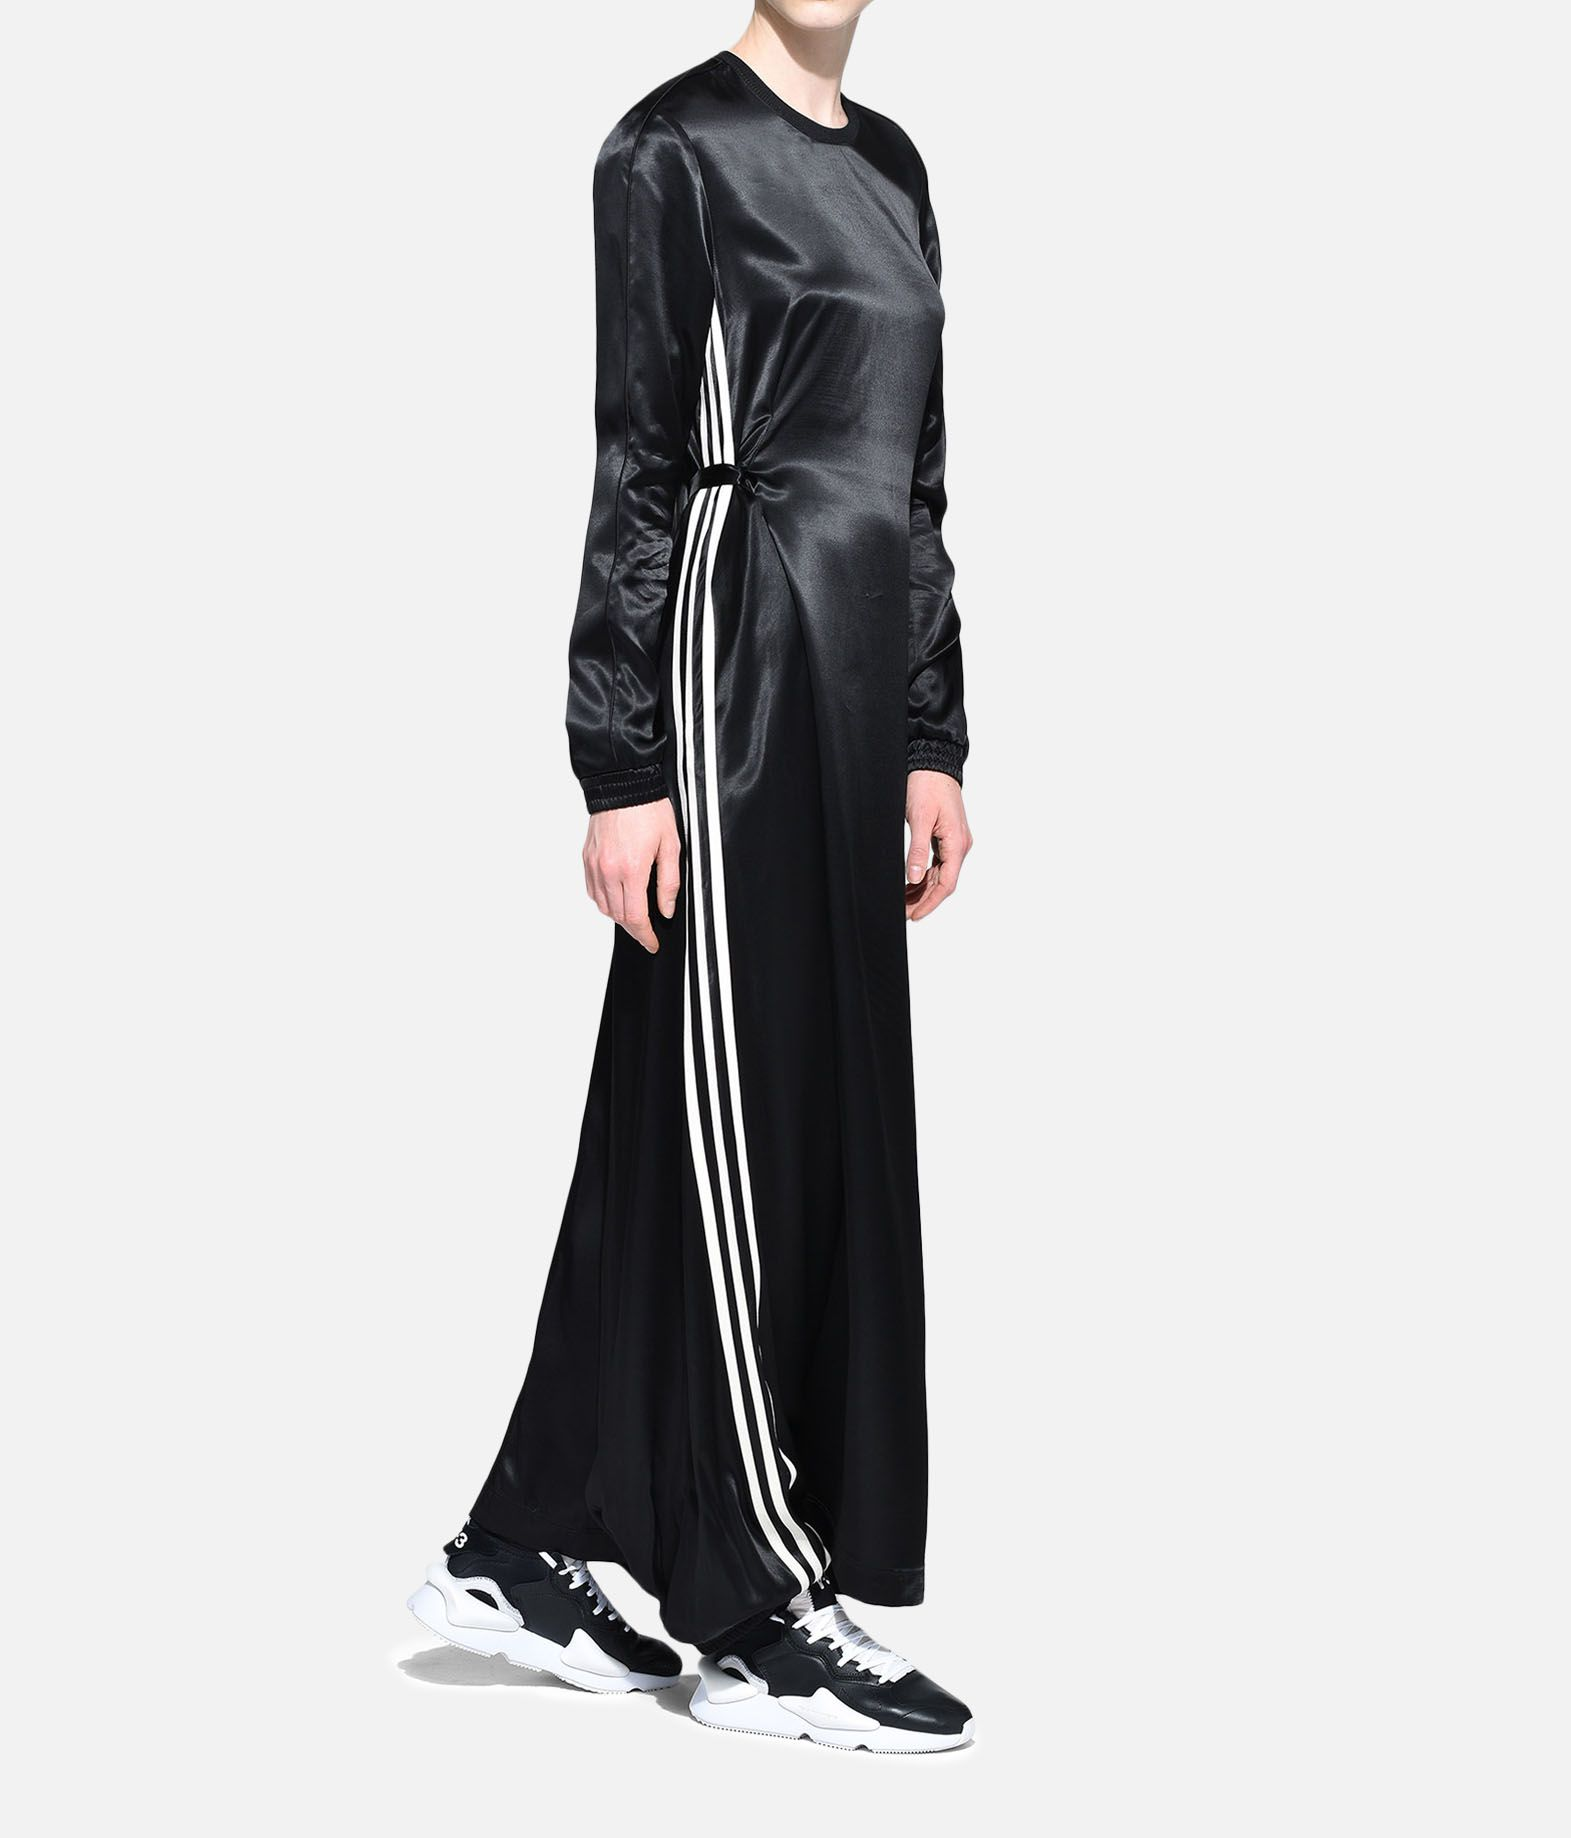 Y-3 Y-3 3-Stripes Lux Track Dress Long dress Woman a